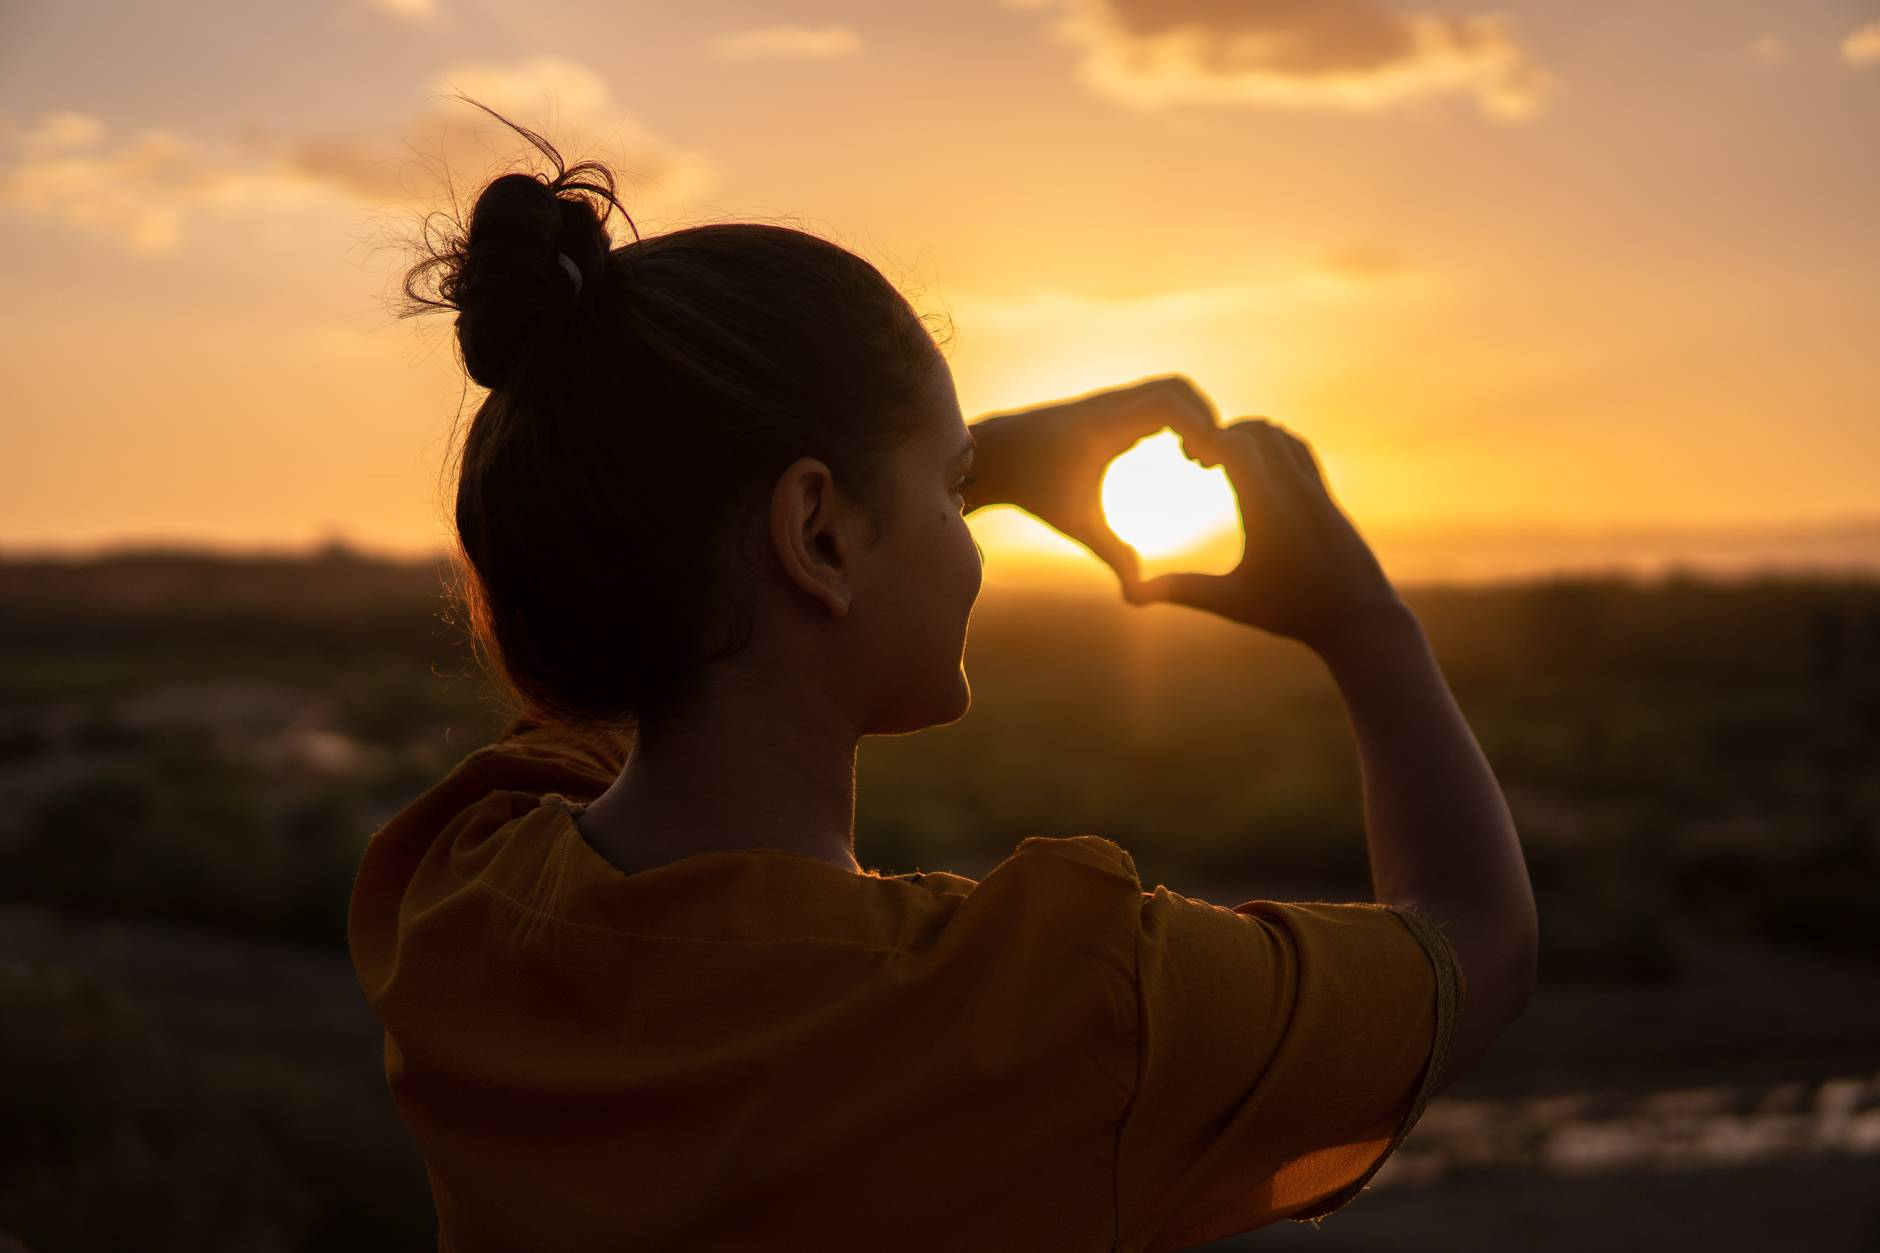 woman watching sunset doing hand heart sign. Watching the sunset can be part of routine self-care.